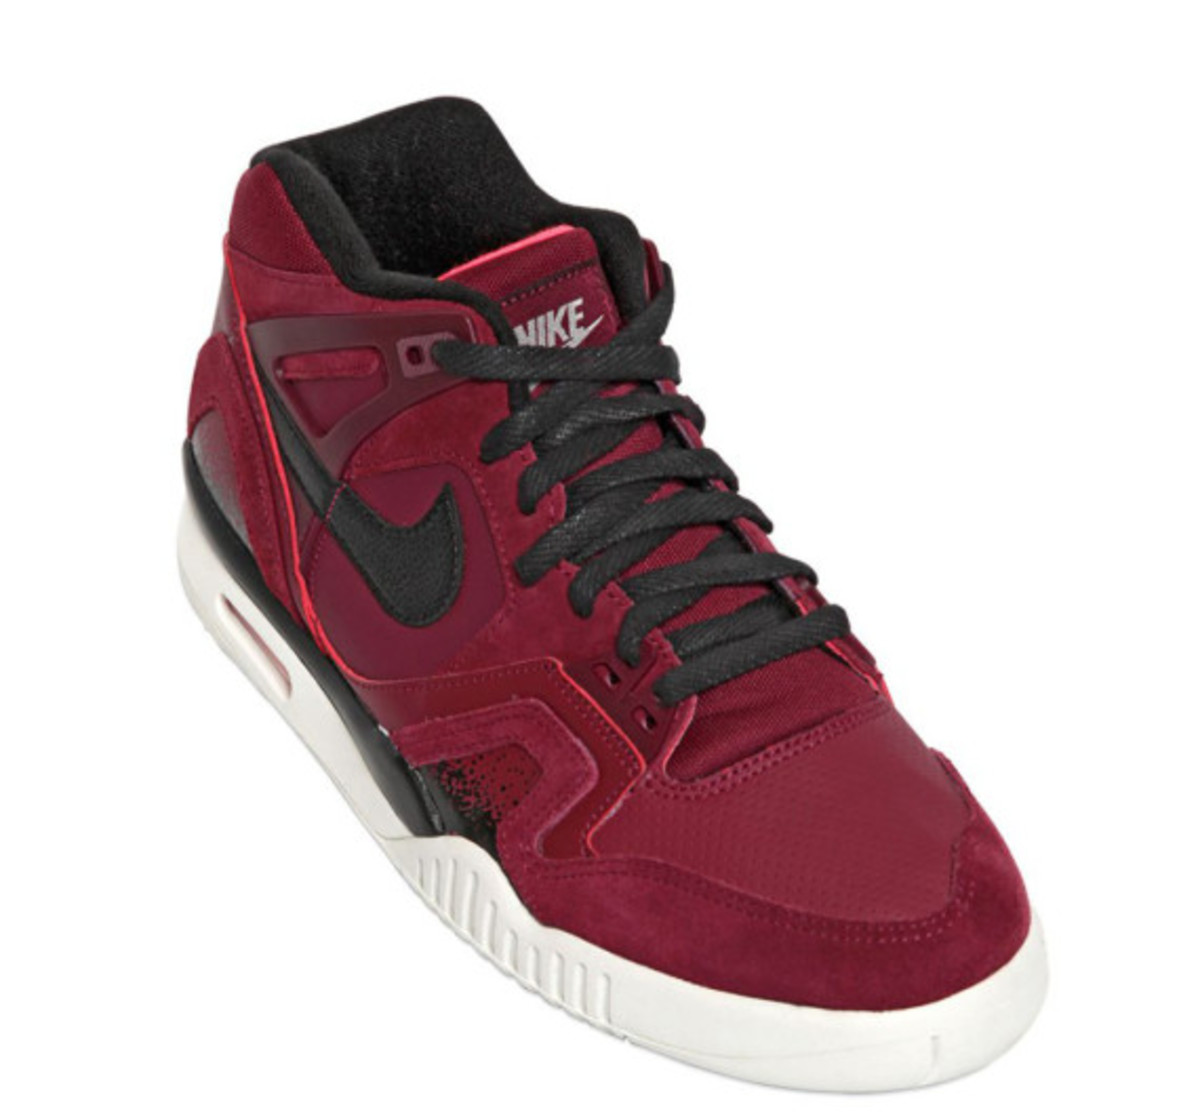 nike-air-tech-challenge-ii-burgundy-suede-03